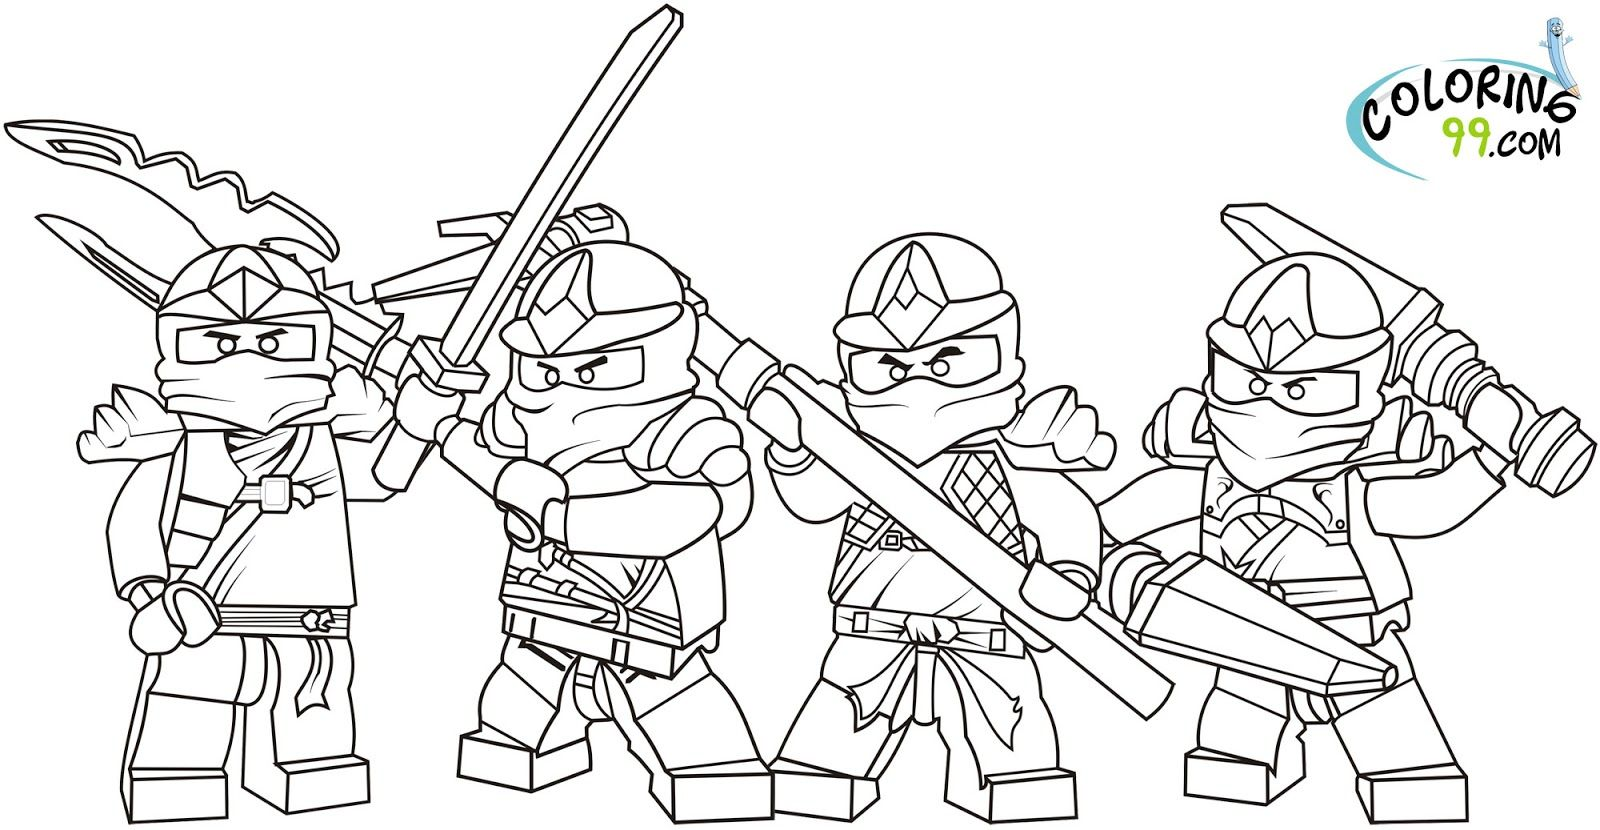 Lego Ninjago Coloring Pages Coloring99 Com Ninjago Coloring Pages Lego Coloring Pages Lego Coloring